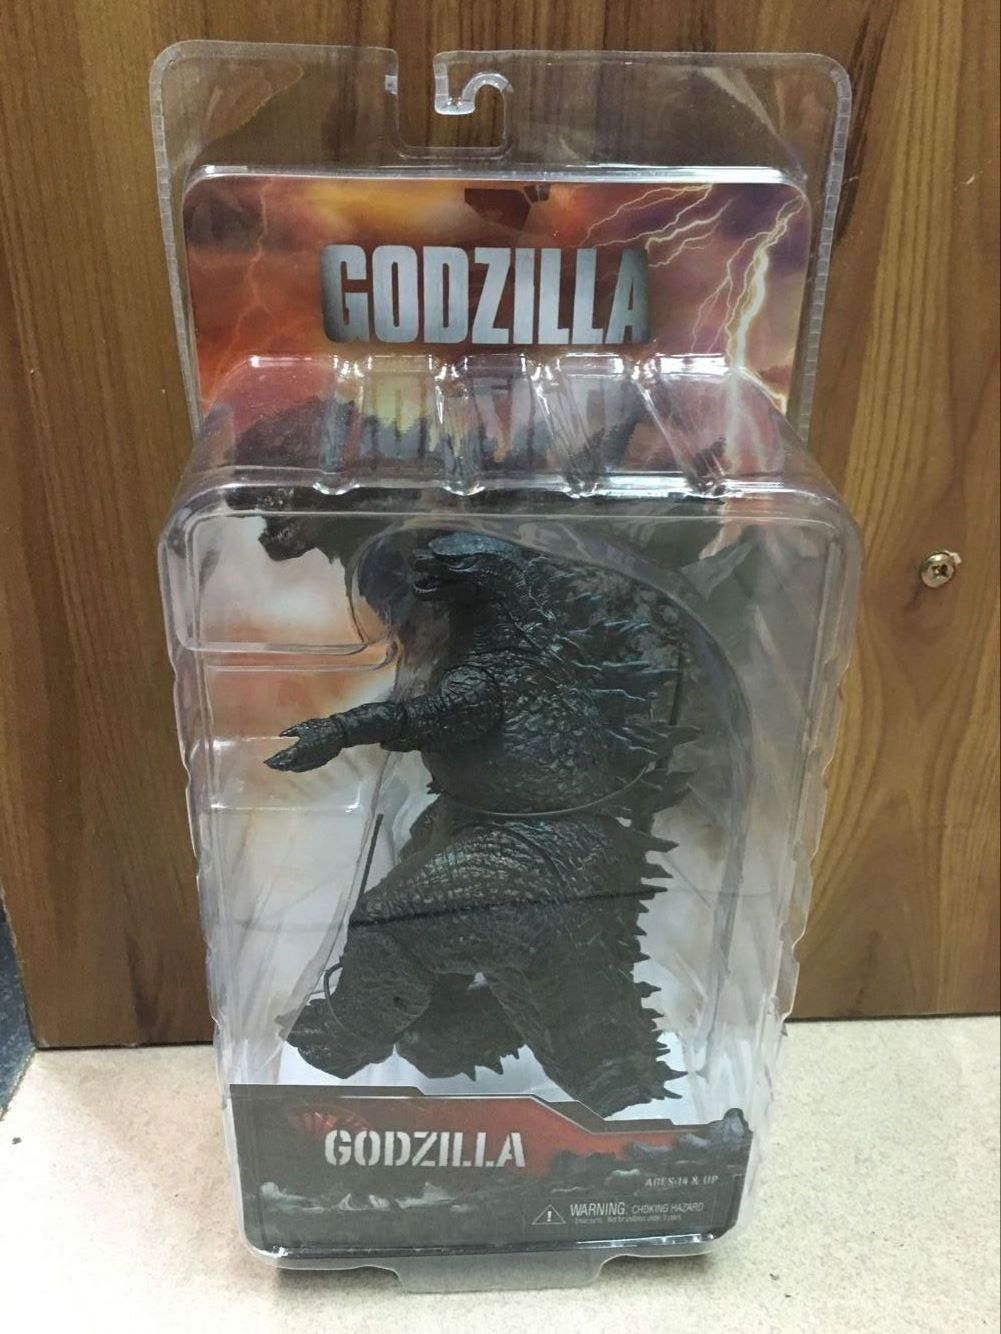 Free Shipping NECA Godzilla Movie 2014 2001 1954 PVC Action Figure Classic Collectible Model Toy KT3380 noise cancelling earphone stereo earbuds reflective fiber cloth line headset music headphones for iphone mobile phone mp3 mp4 page 3